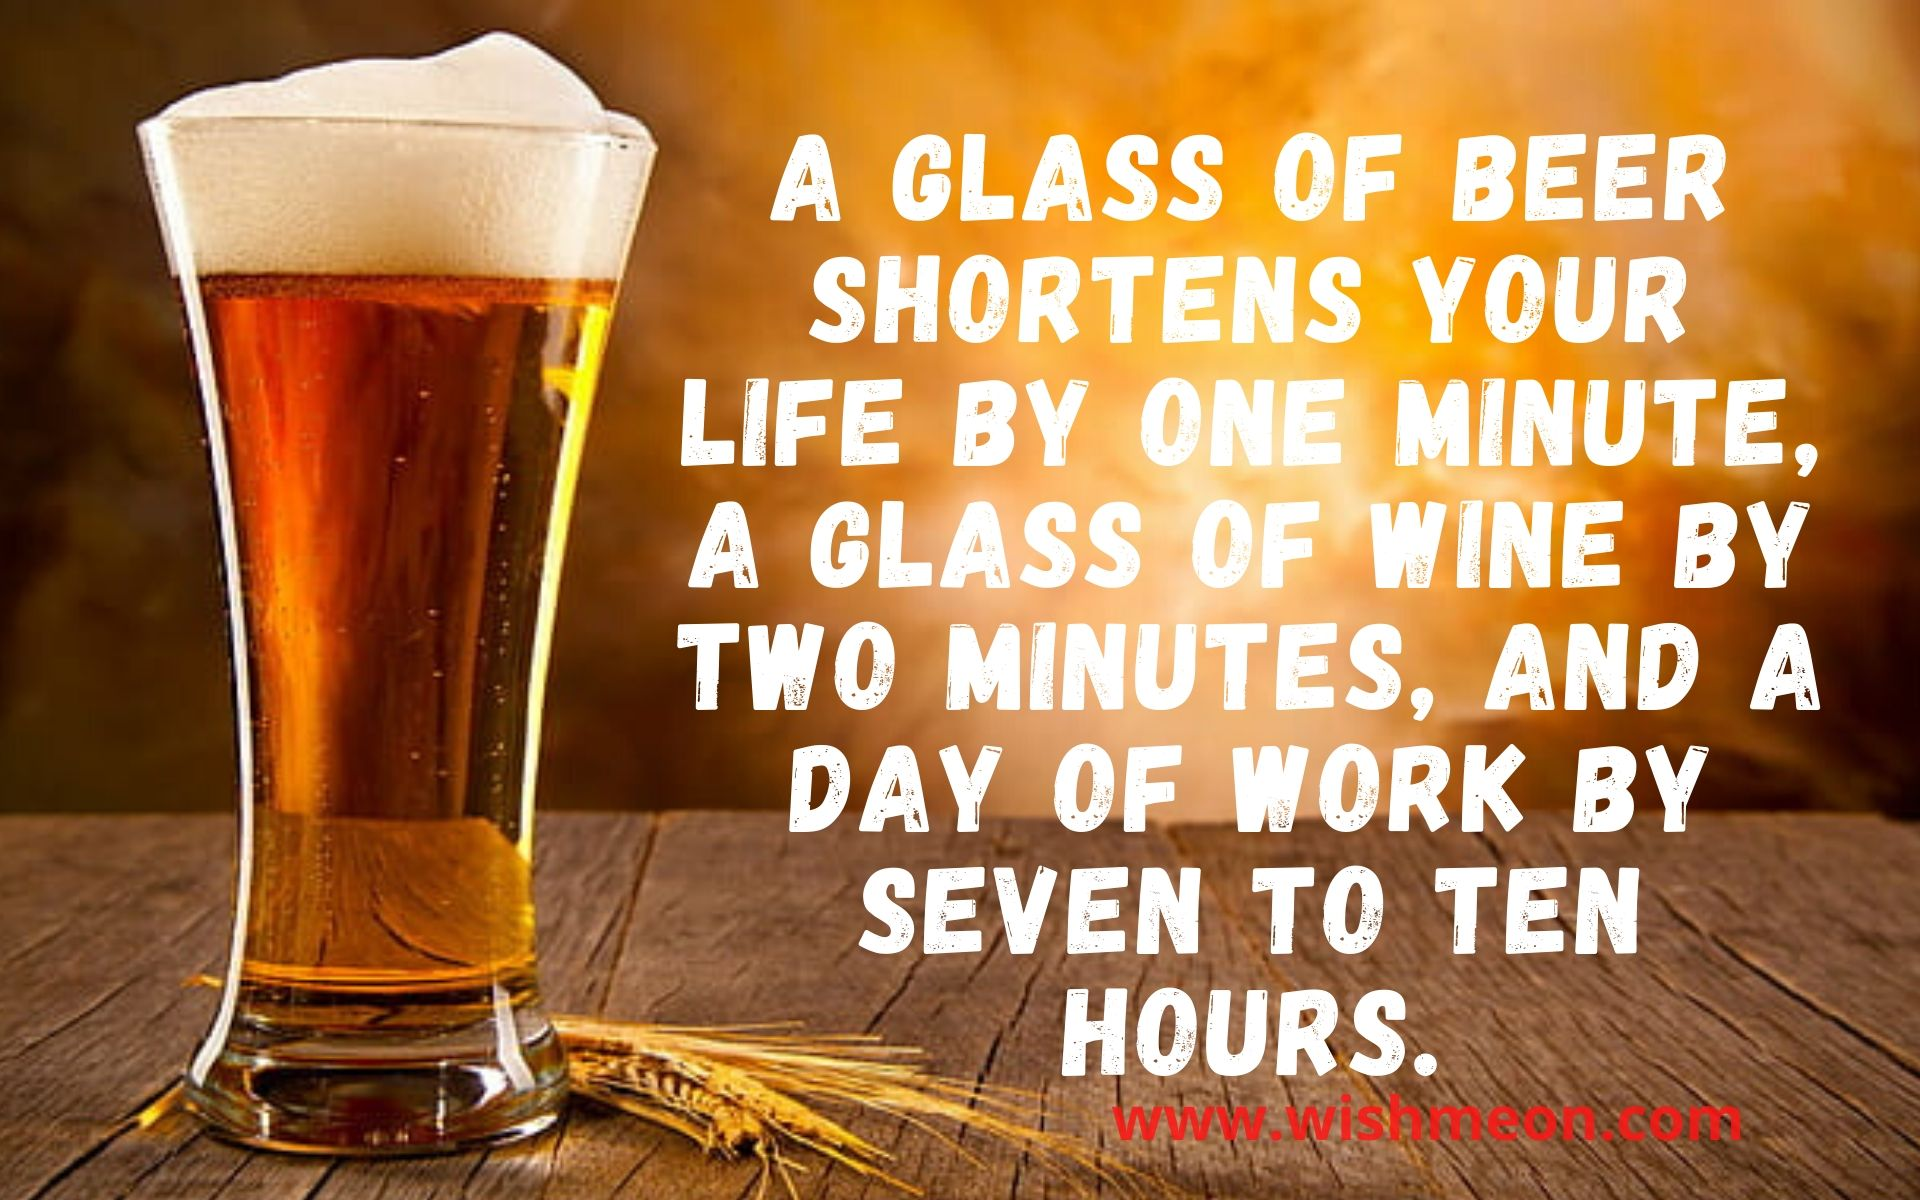 A Glass Of Beer Shortens Your Life By One Minute